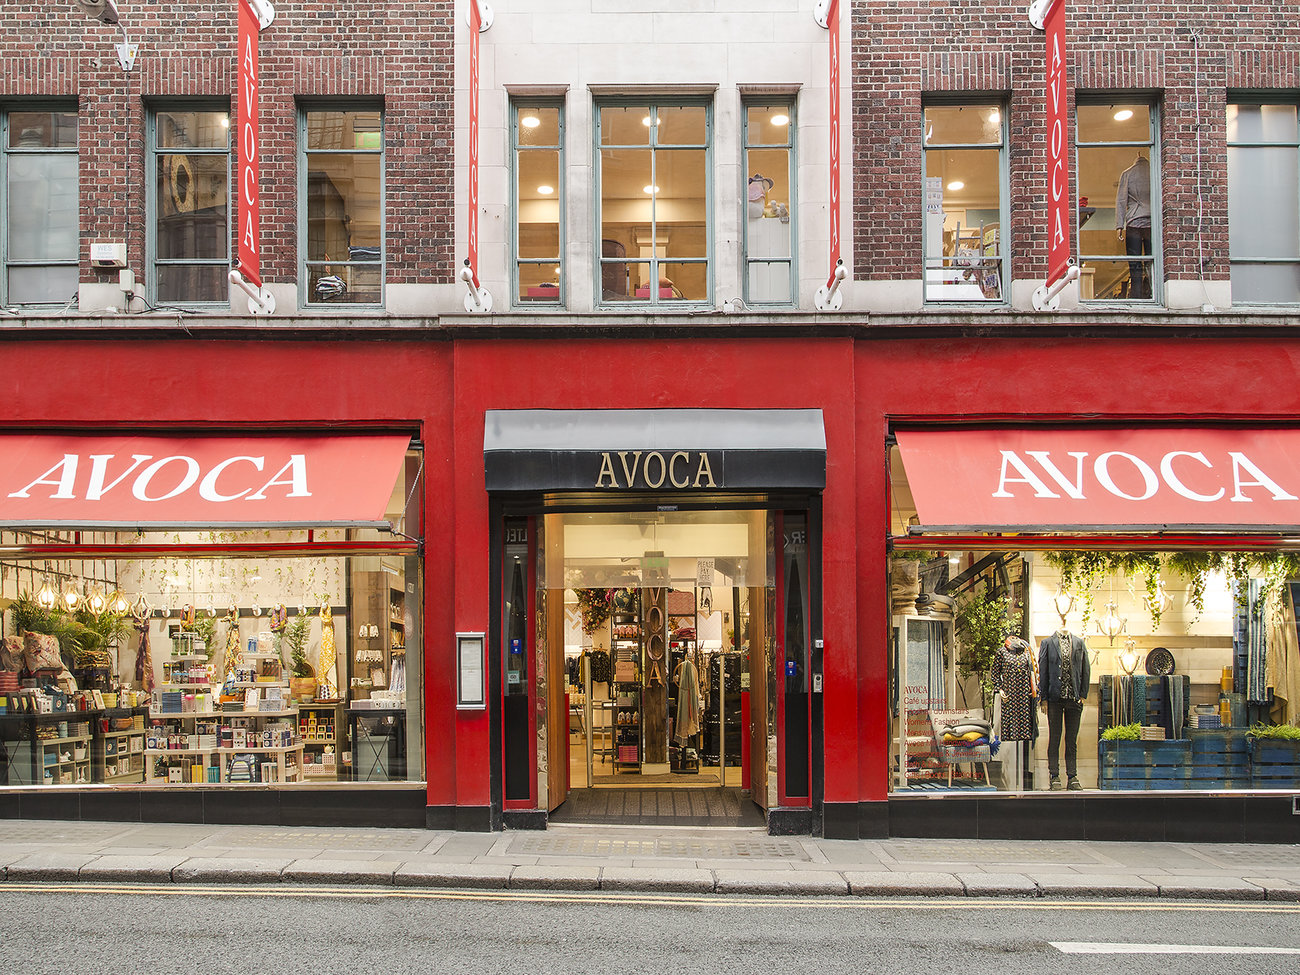 Avoca Store in Dublin